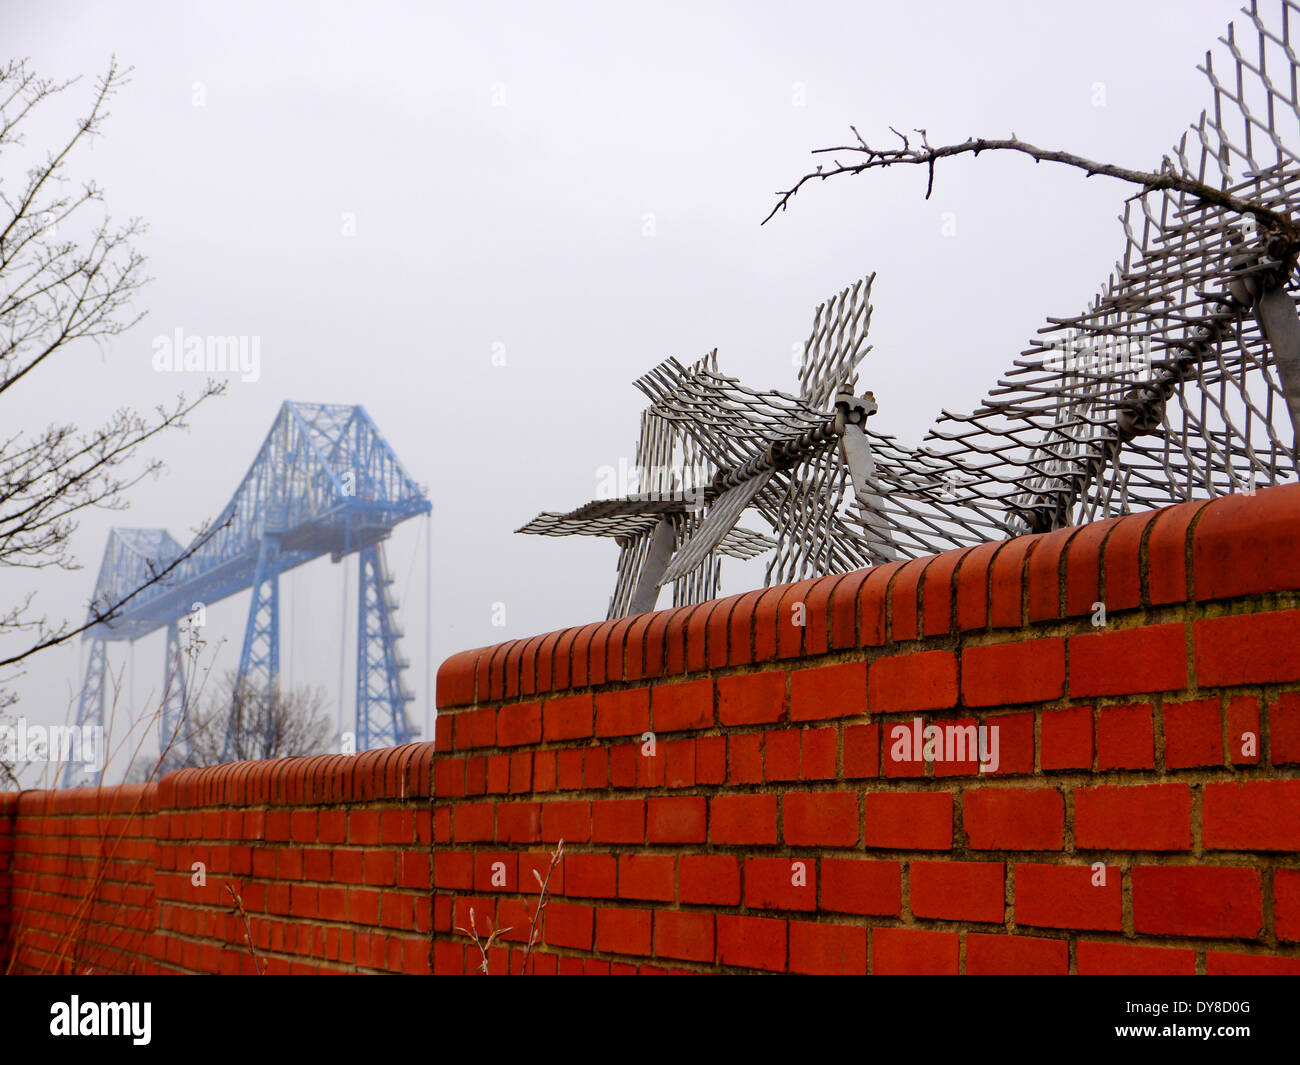 Historic Transporter Bridge spanning the River Tees, behind brick wall at Middlehaven, Middlesbrough, Teesside, England, UK - Stock Image